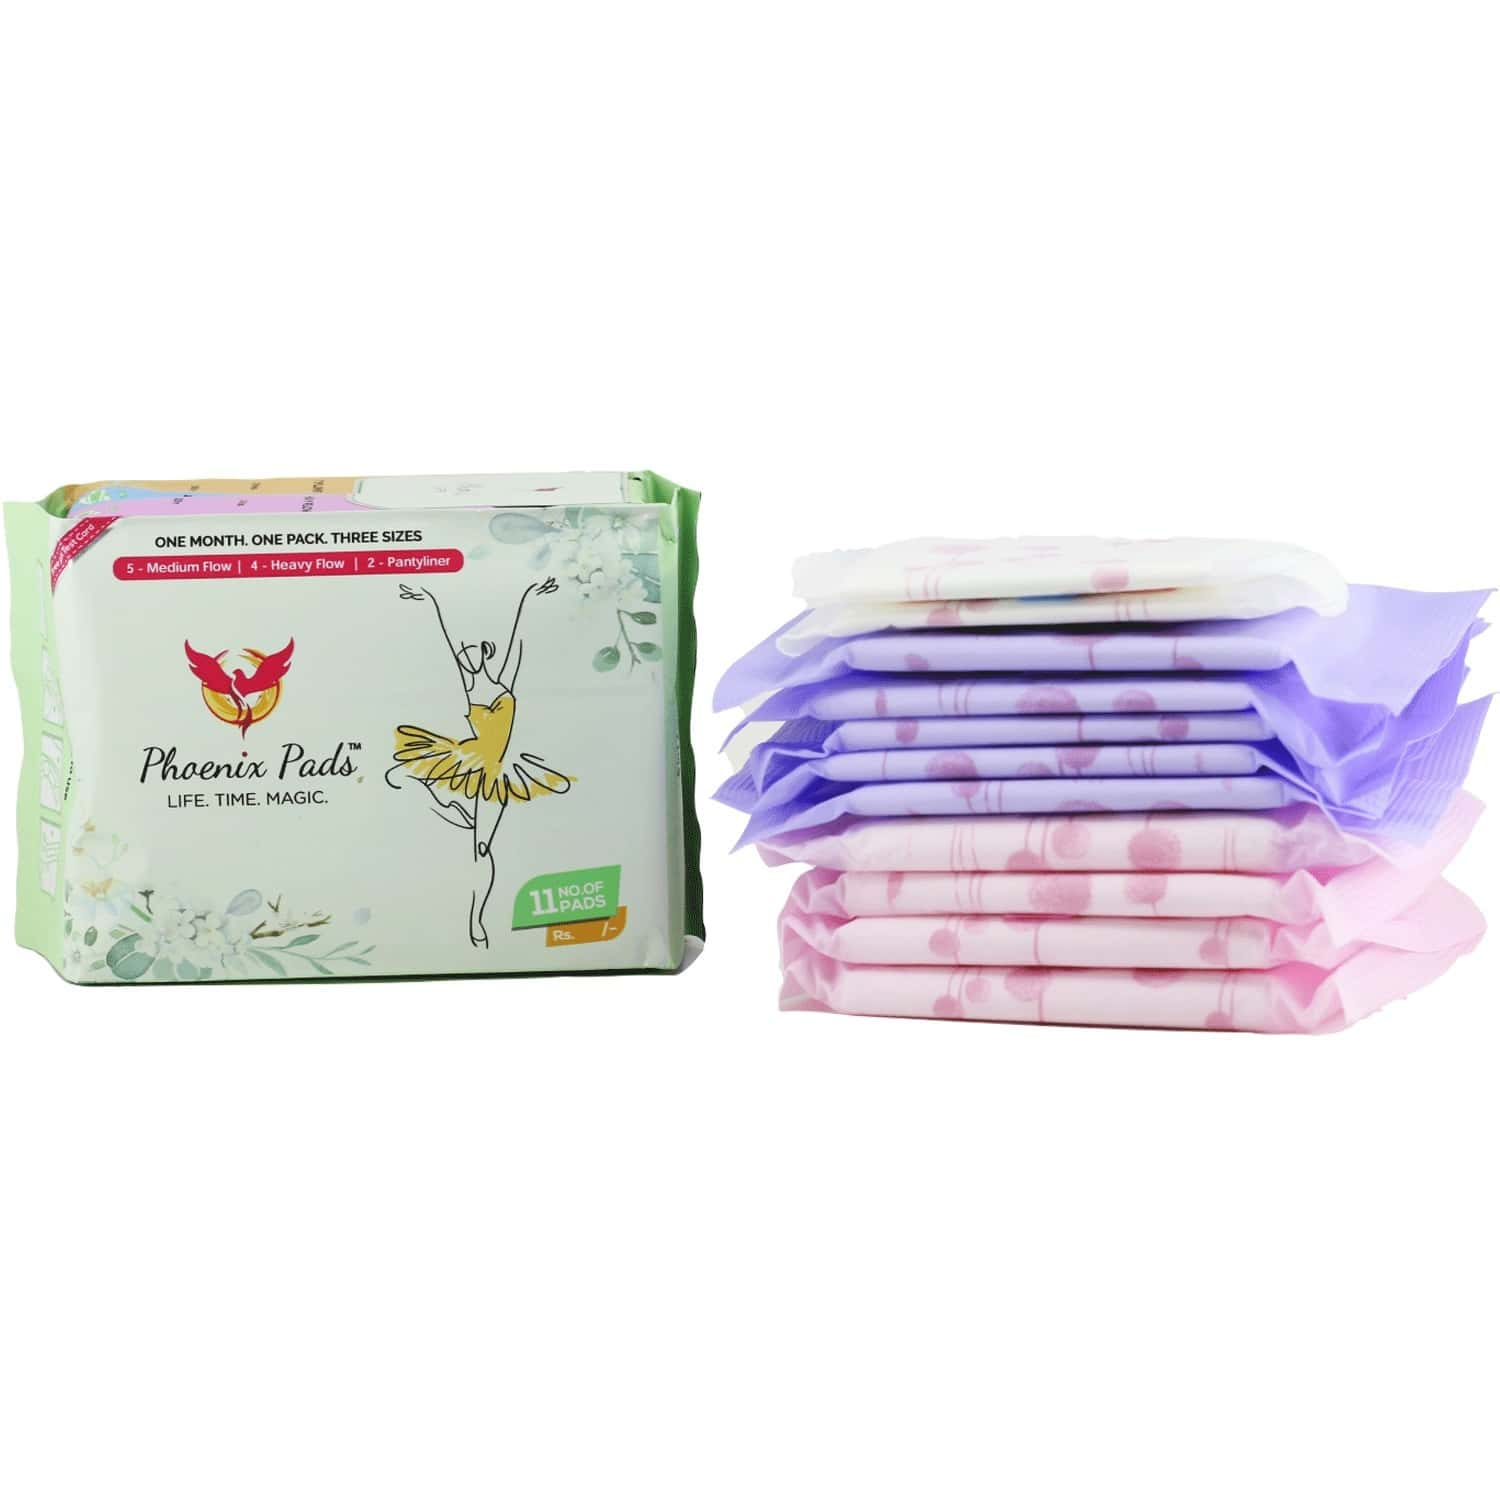 Phoenix Pads Ultra Thin Sanitary Pads With 4 Wings And Anion Chip - 11 Pcs (4 Heavy Flow, 5 Medium Flow, 2 Pantyliners)